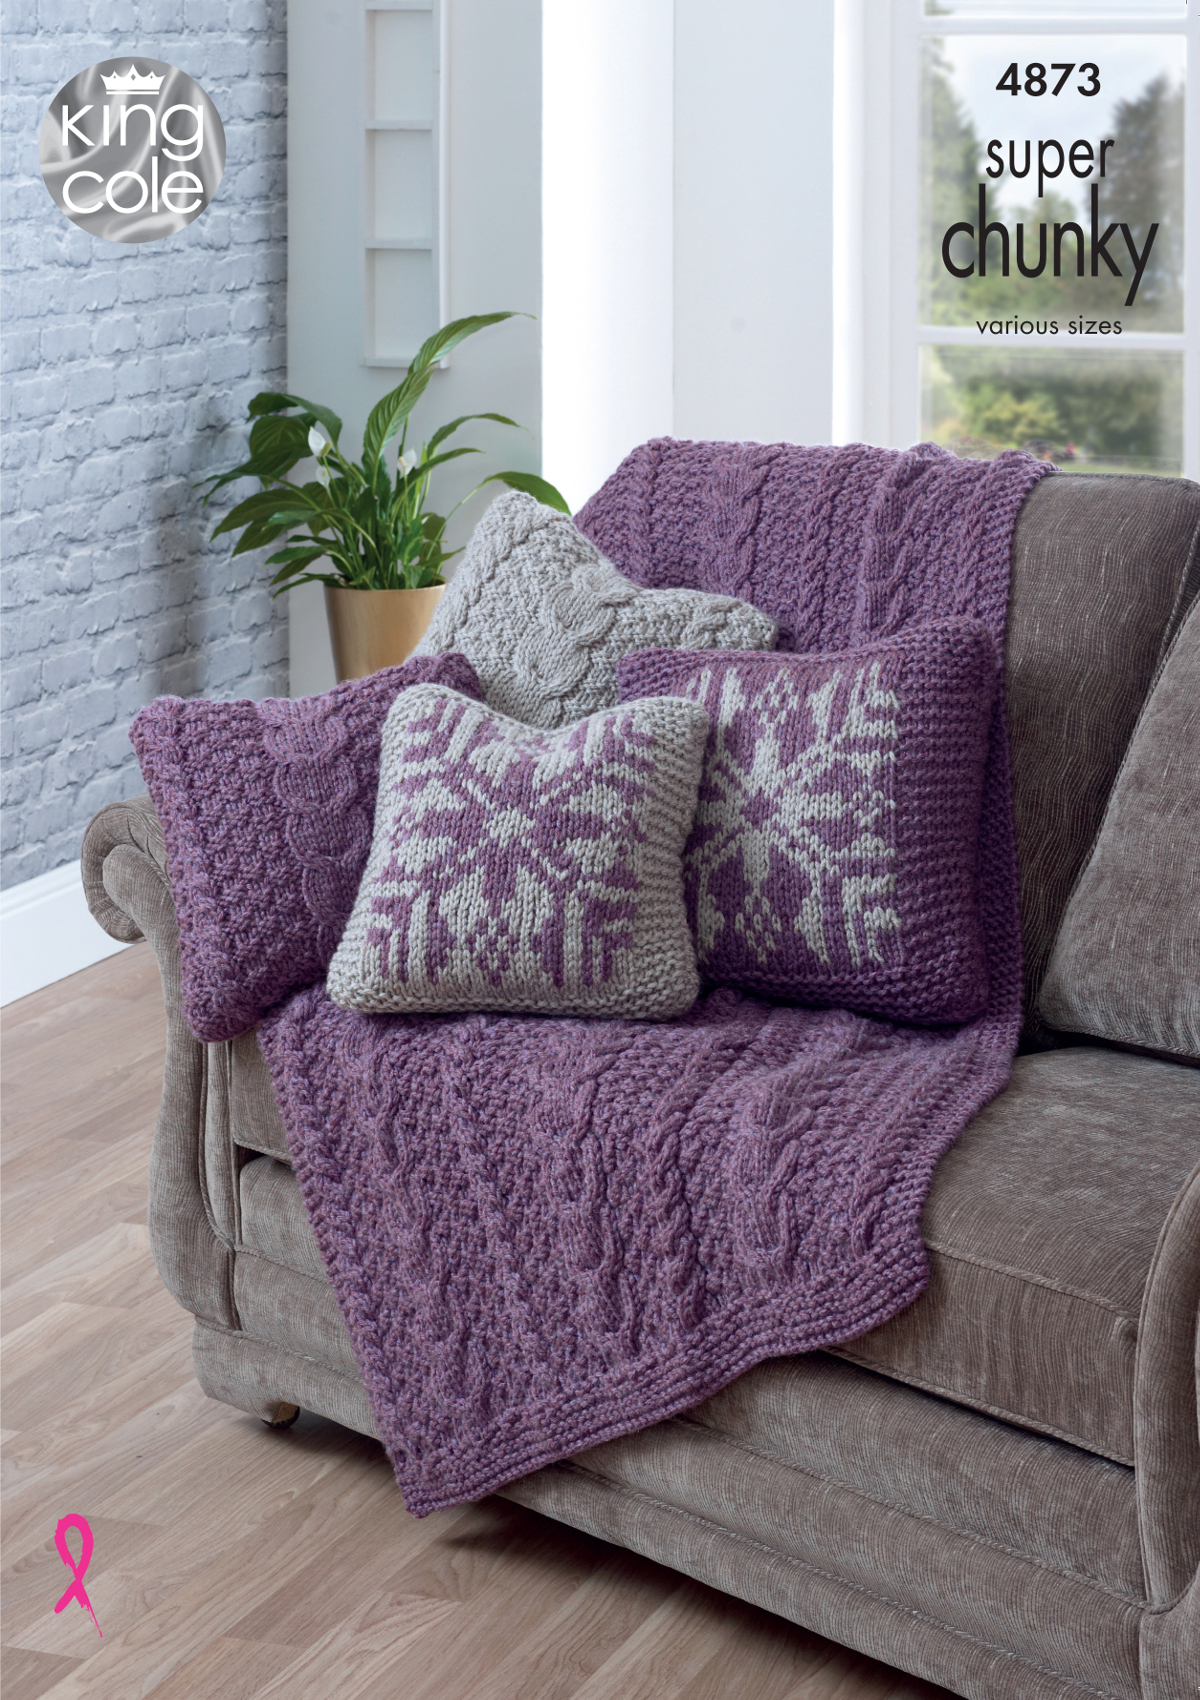 King Cole Super Chunky Knitting Pattern Small or Large Cushion ...